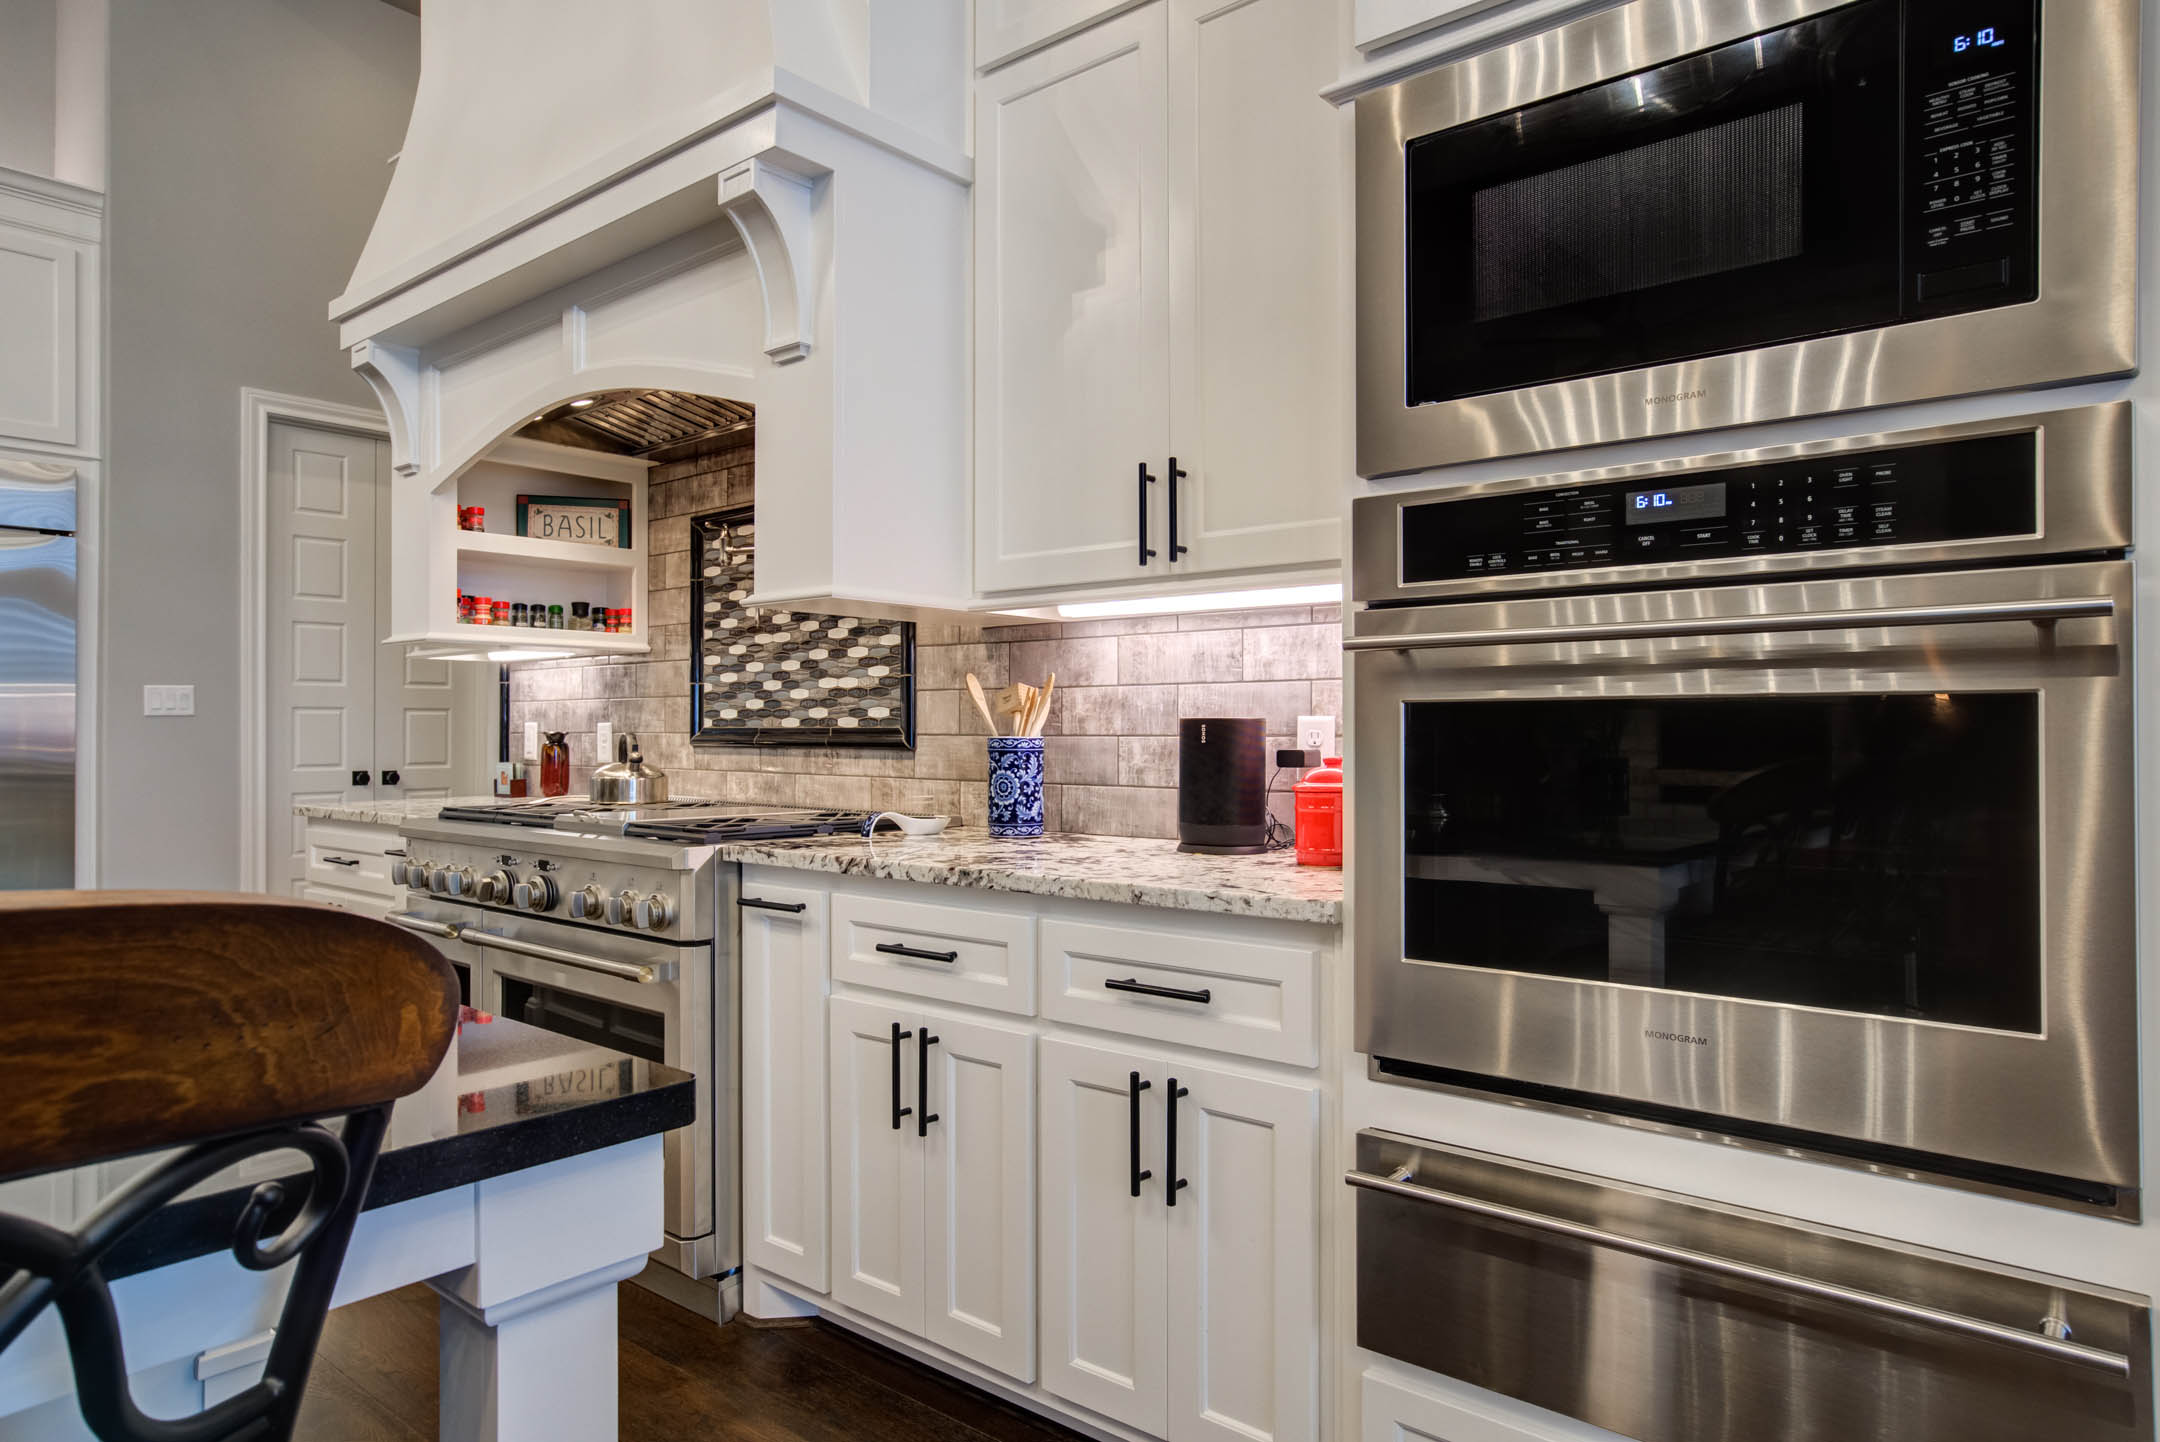 Spacious kitchen in custom home in Lubbock, Texas.